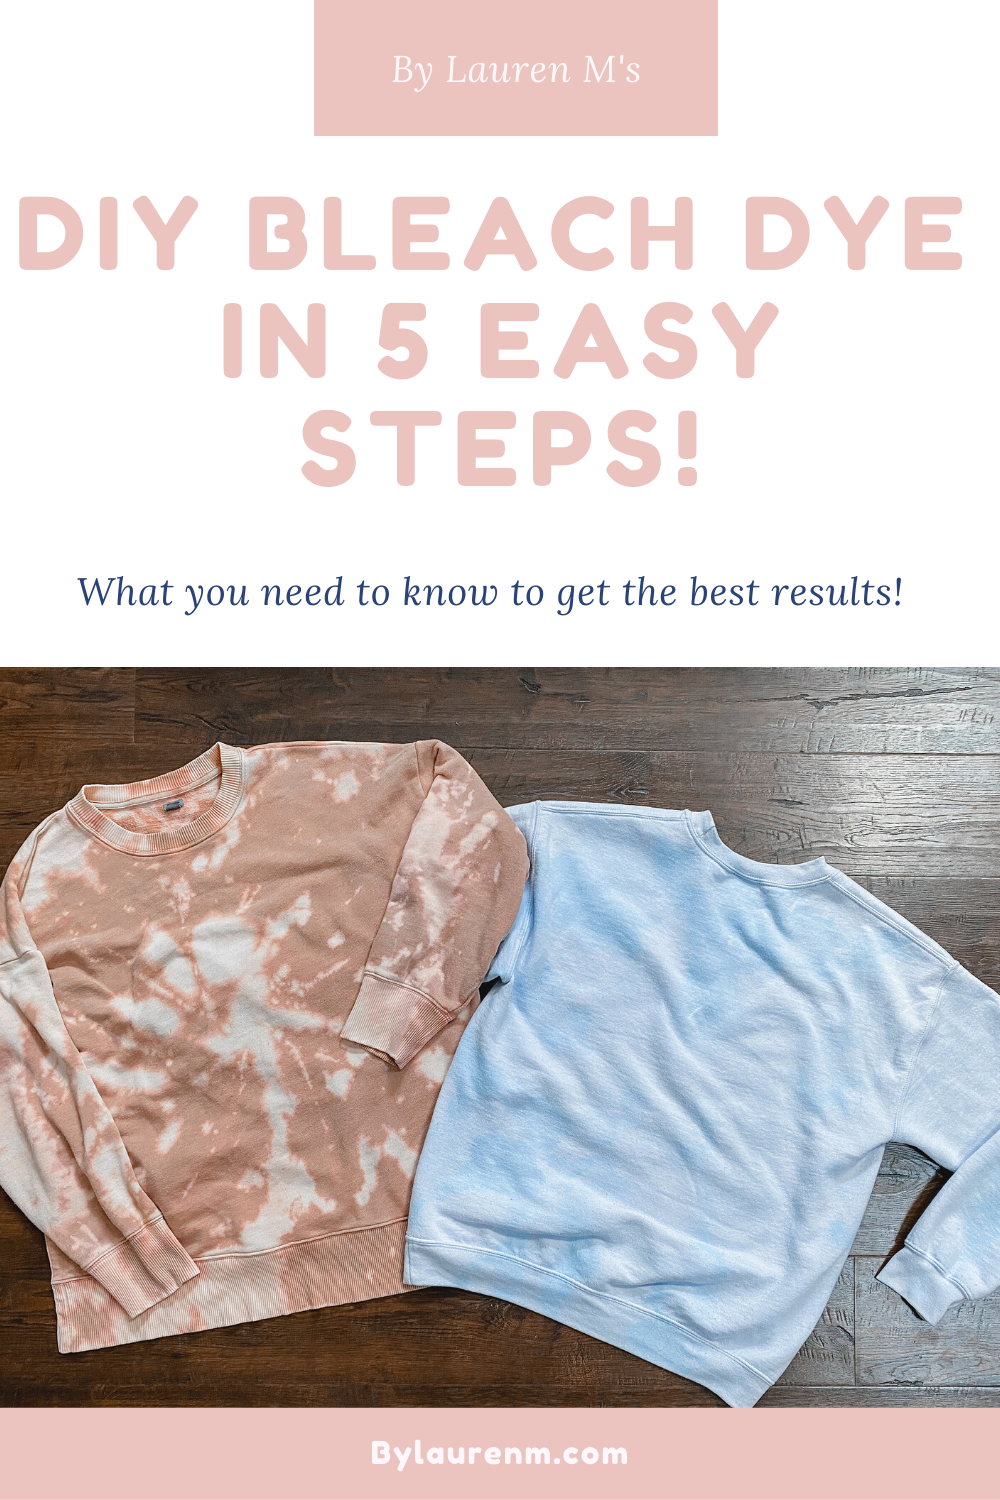 Virginia blogger, Lauren Dix, shares simple tips to DIY bleach dye in 5 quick steps! Learn techniques, tips, and tricks for bleach dying!